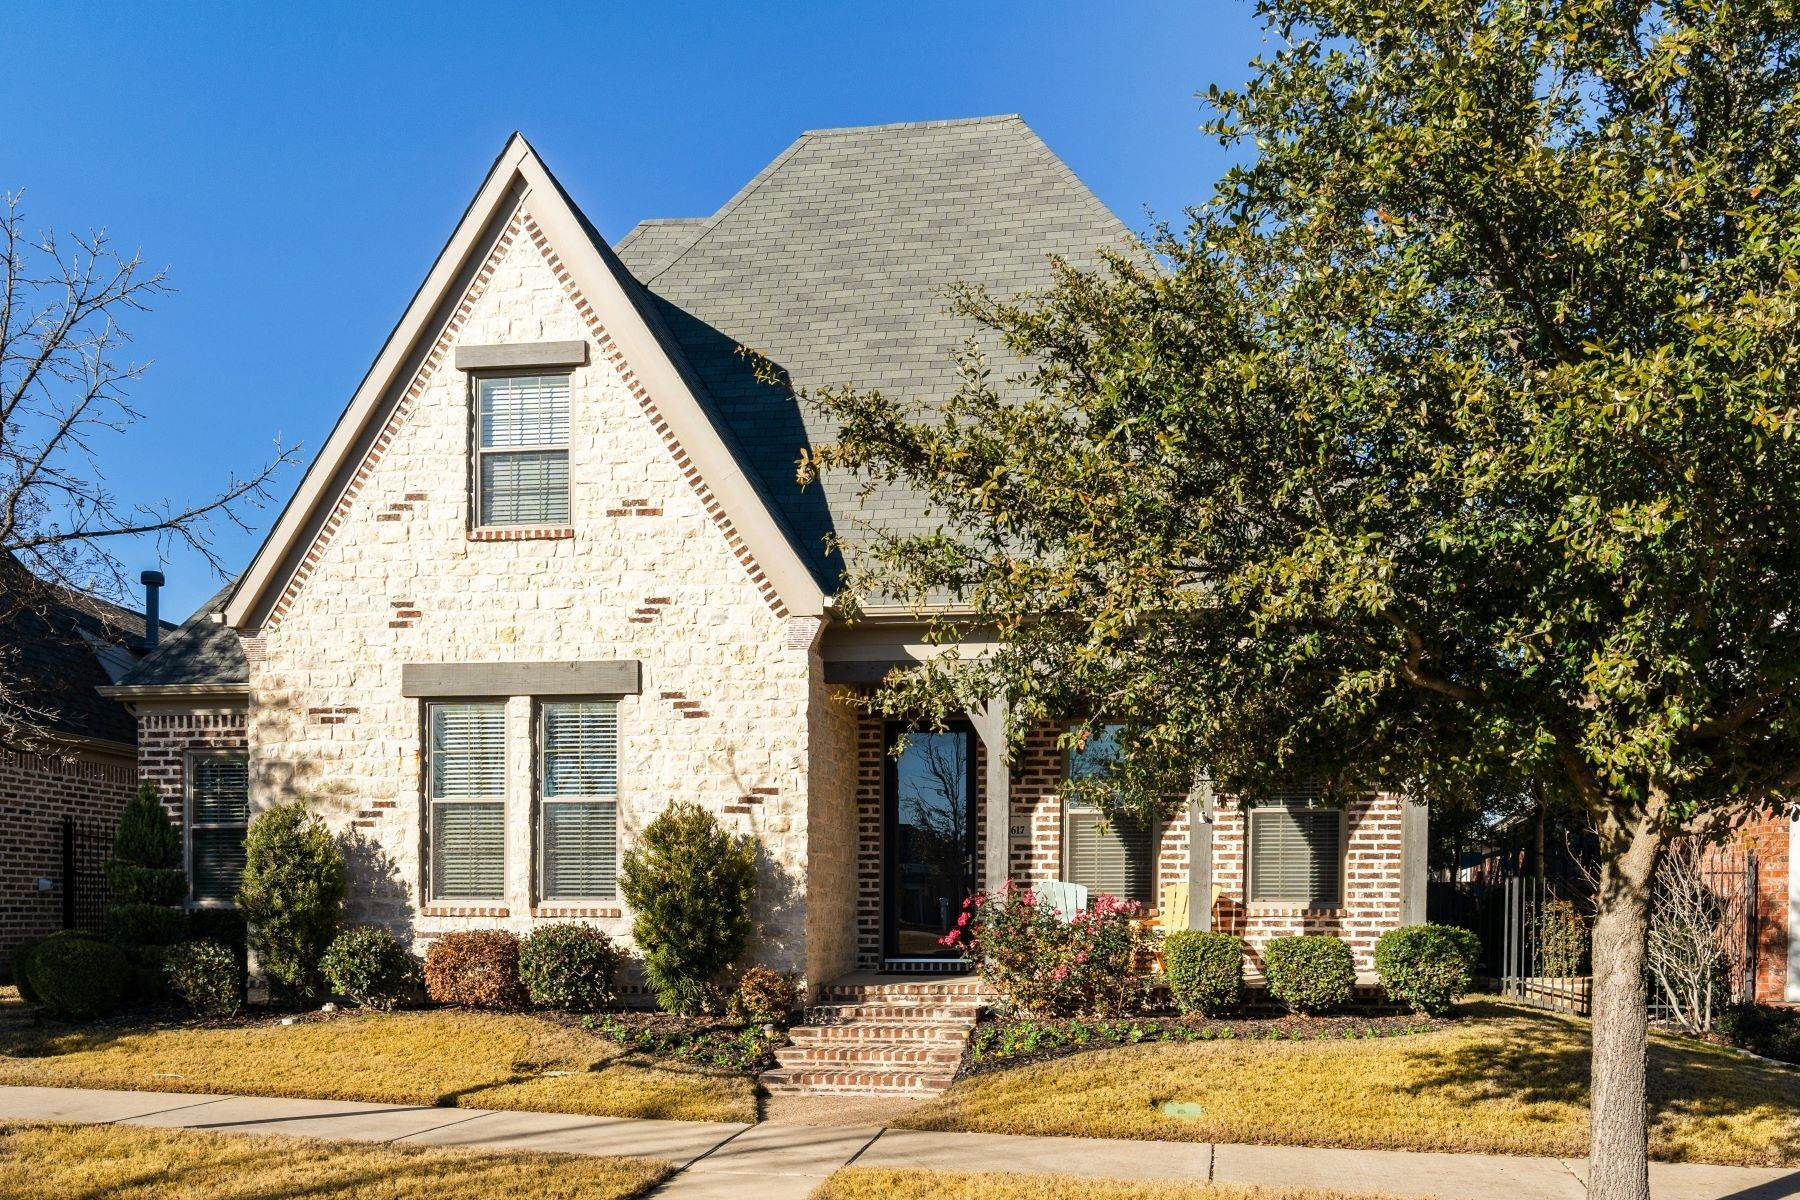 Single Family Homes for Sale at Ideal Home with Designer Touches 8617 Nichols Way North Richland Hills, Texas 76180 United States